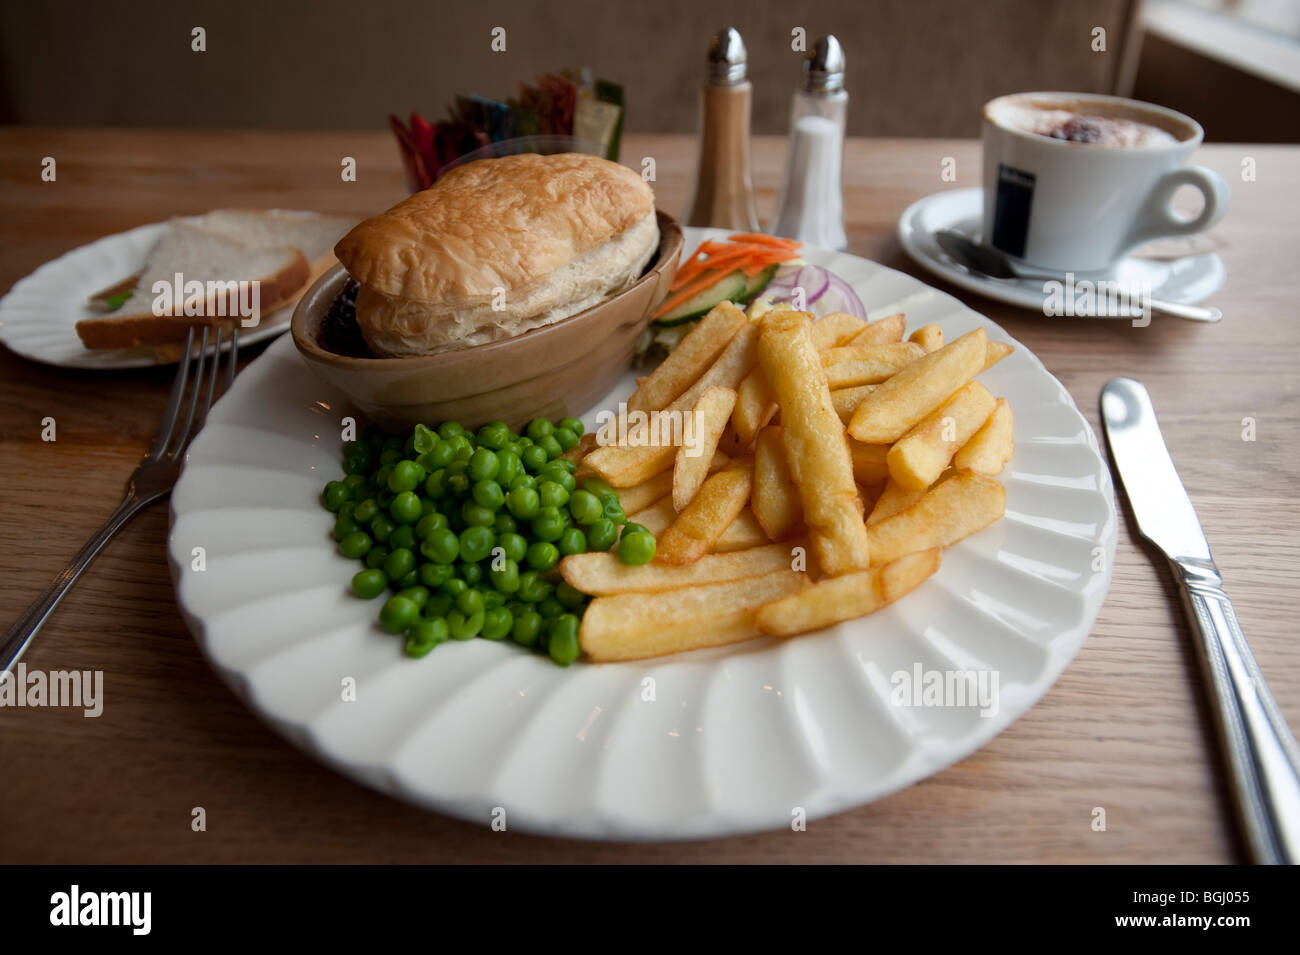 steak and kidney meat pie chips and peas on plate in cafe UK - Stock Image